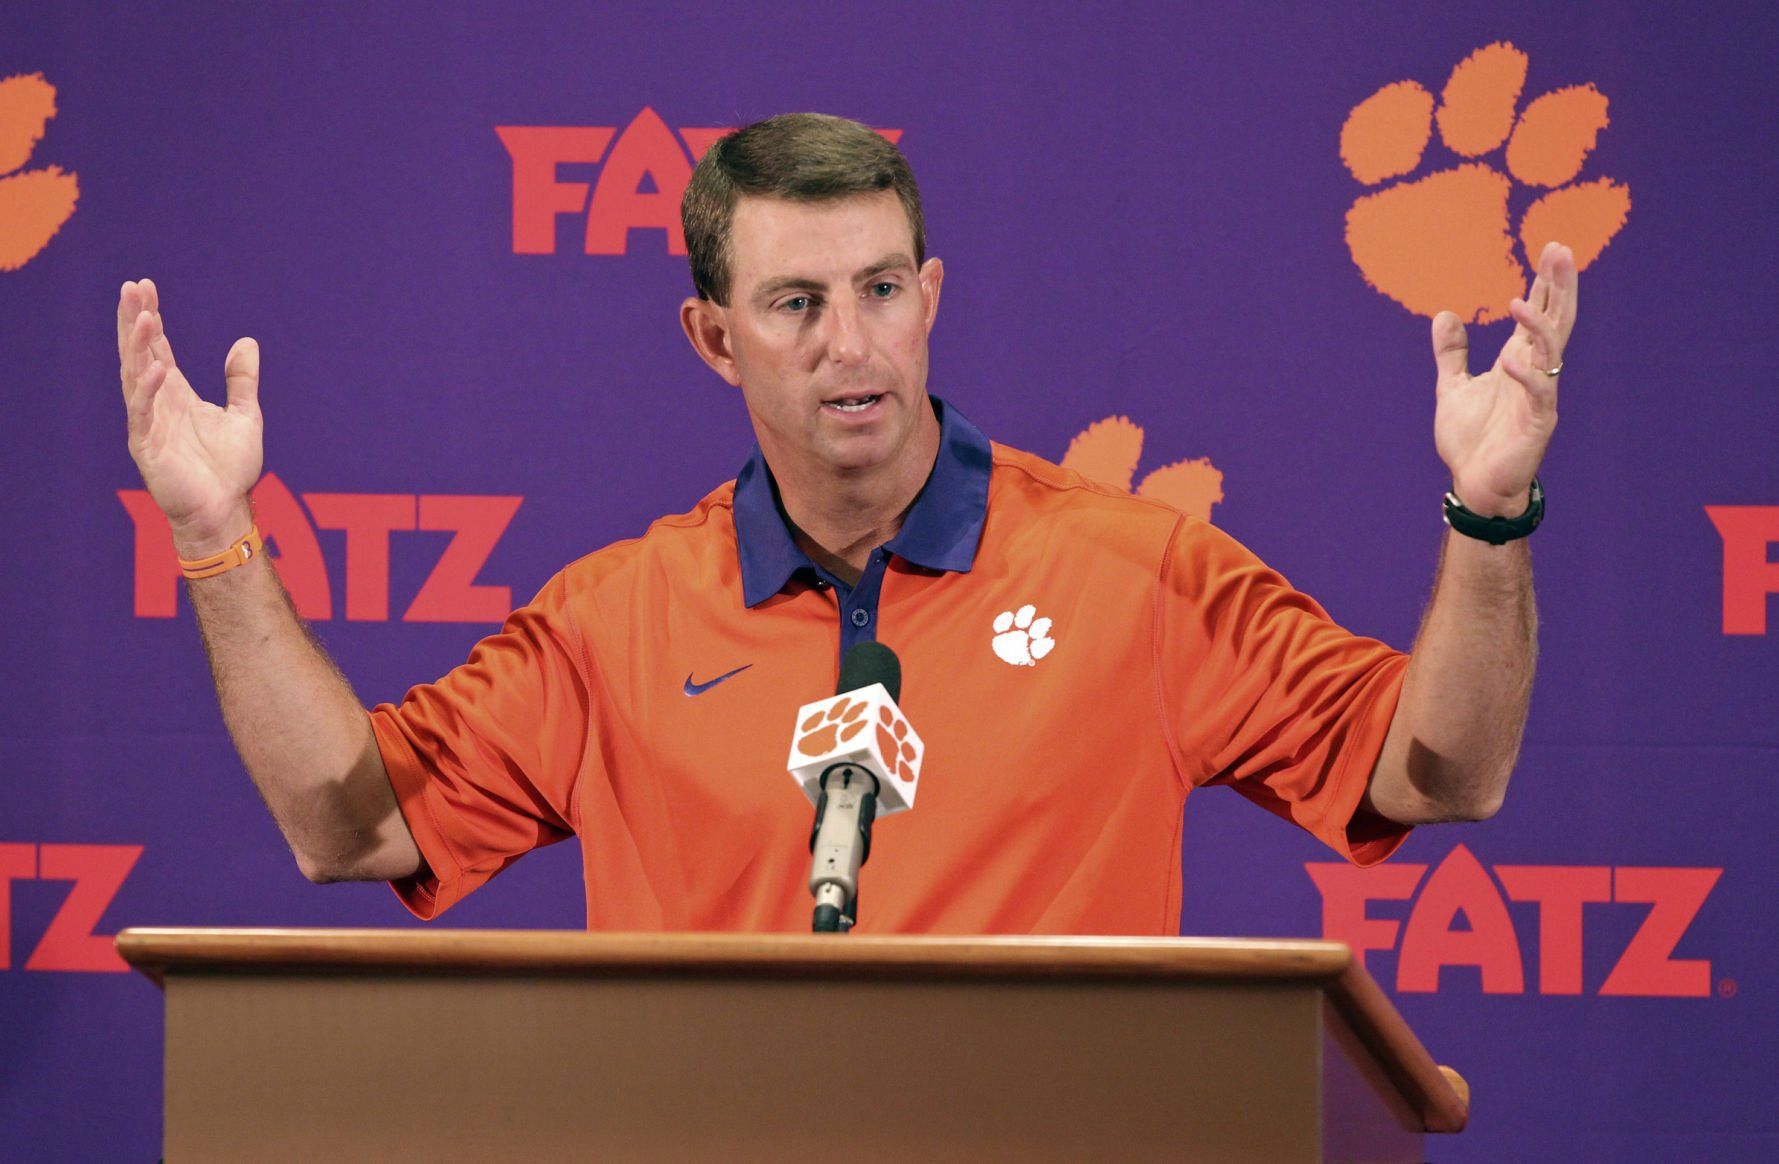 Clemson football trainers, managers, staff help student after vehicle accident